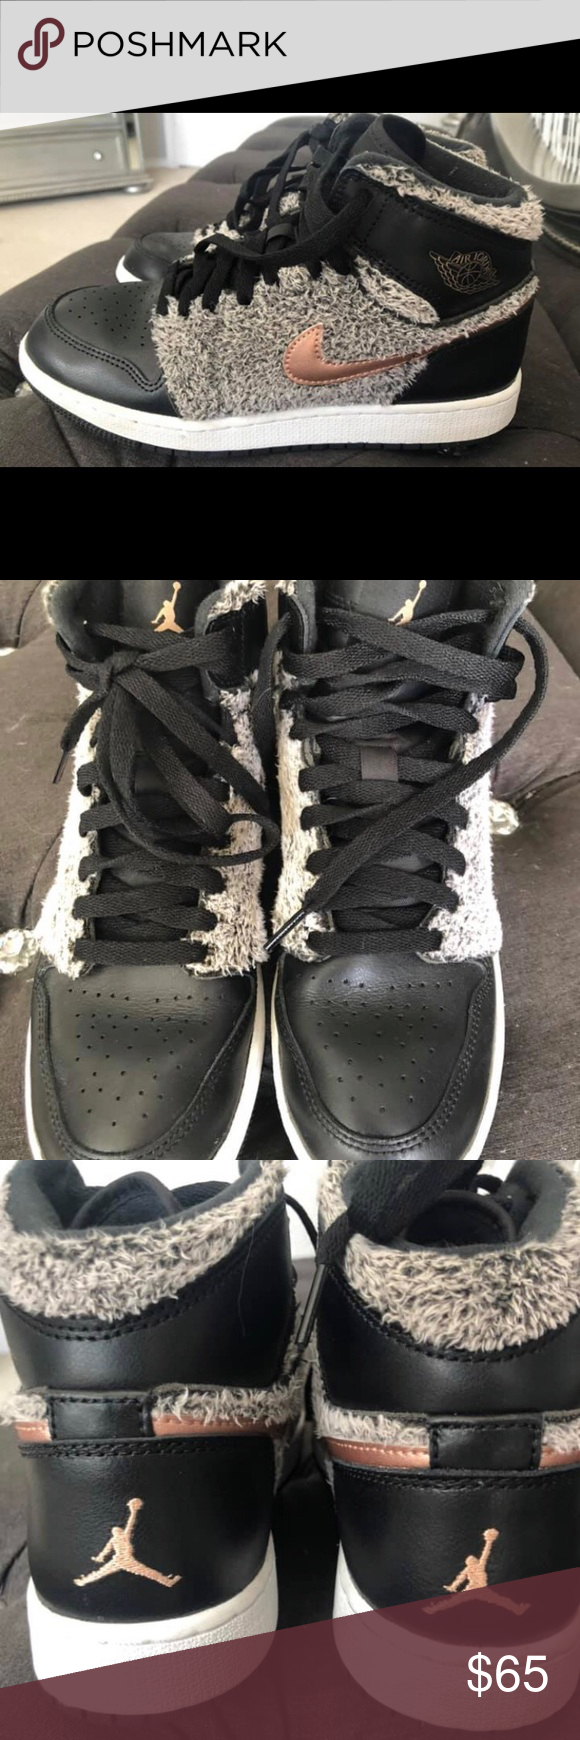 Air Jordan 1 Retro High GS 'Fleece' Youth Sneakers Barely used in great condition Jordan Shoes Sneakers #airjordan1outfitwomen Air Jordan 1 Retro High GS 'Fleece' Youth Sneakers Barely used in great condition Jordan Shoes Sneakers #airjordan1outfitwomen